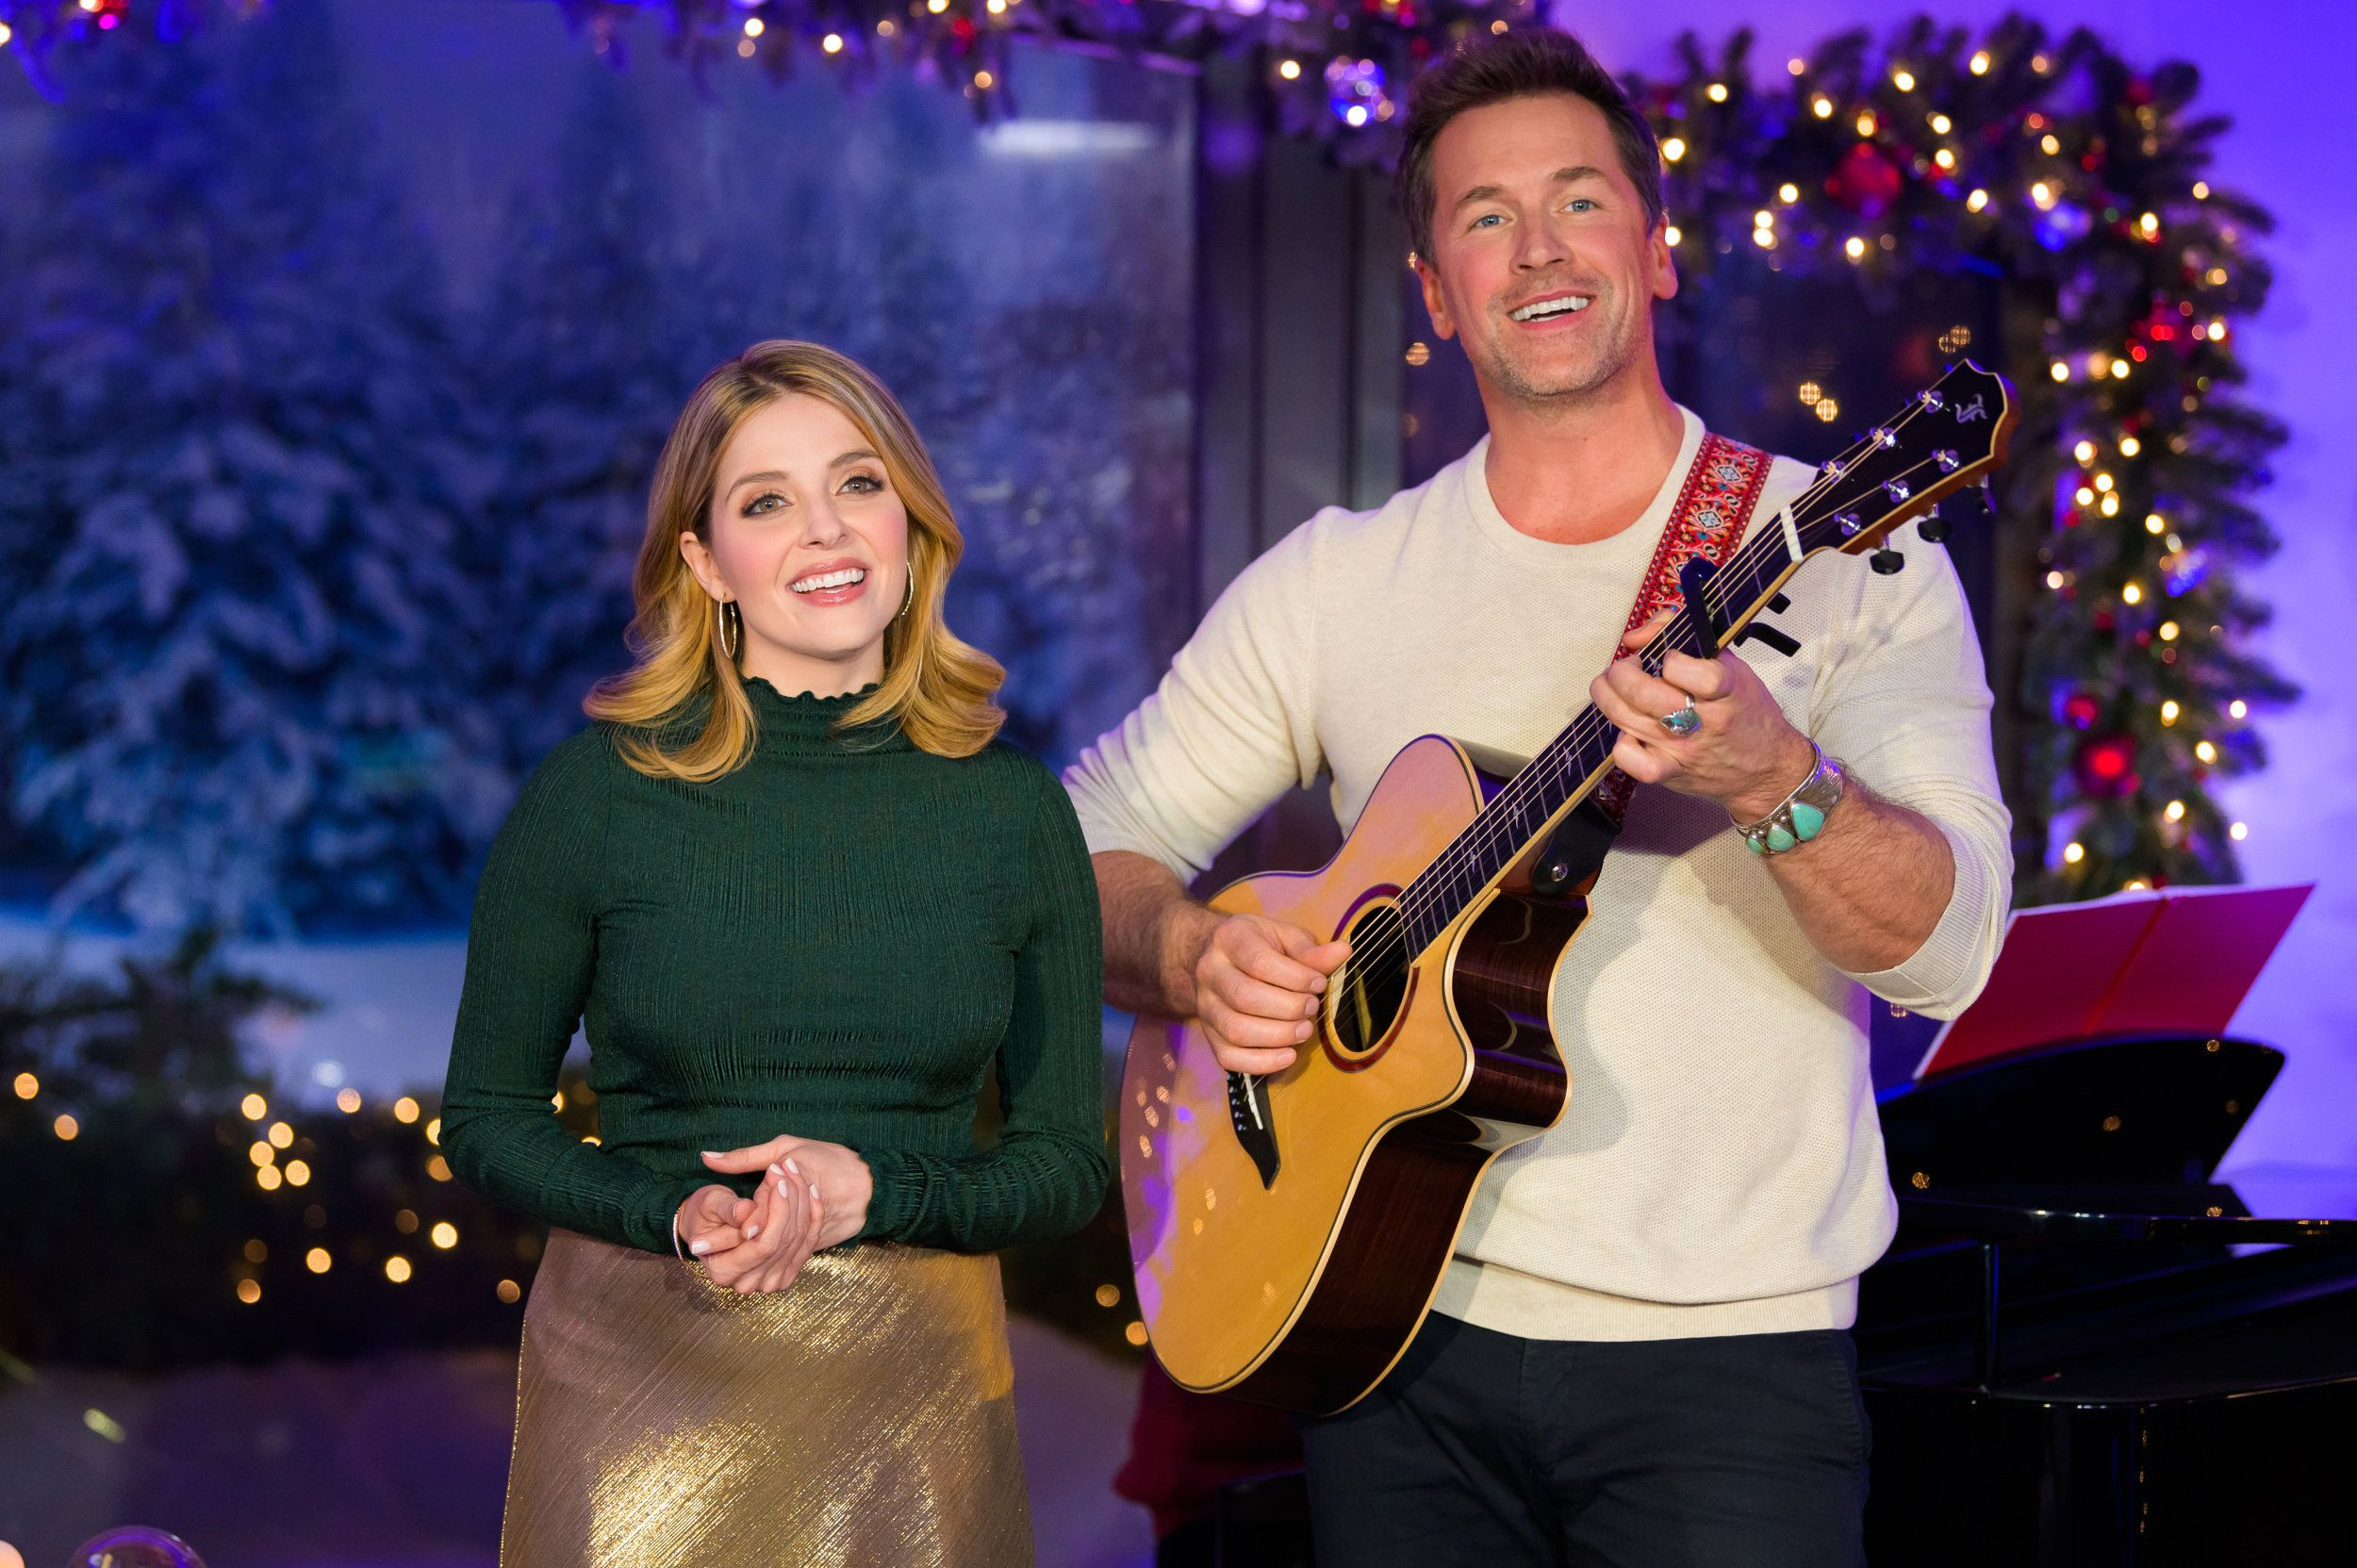 Check out photos from Hallmark Channel's Christmas Concert